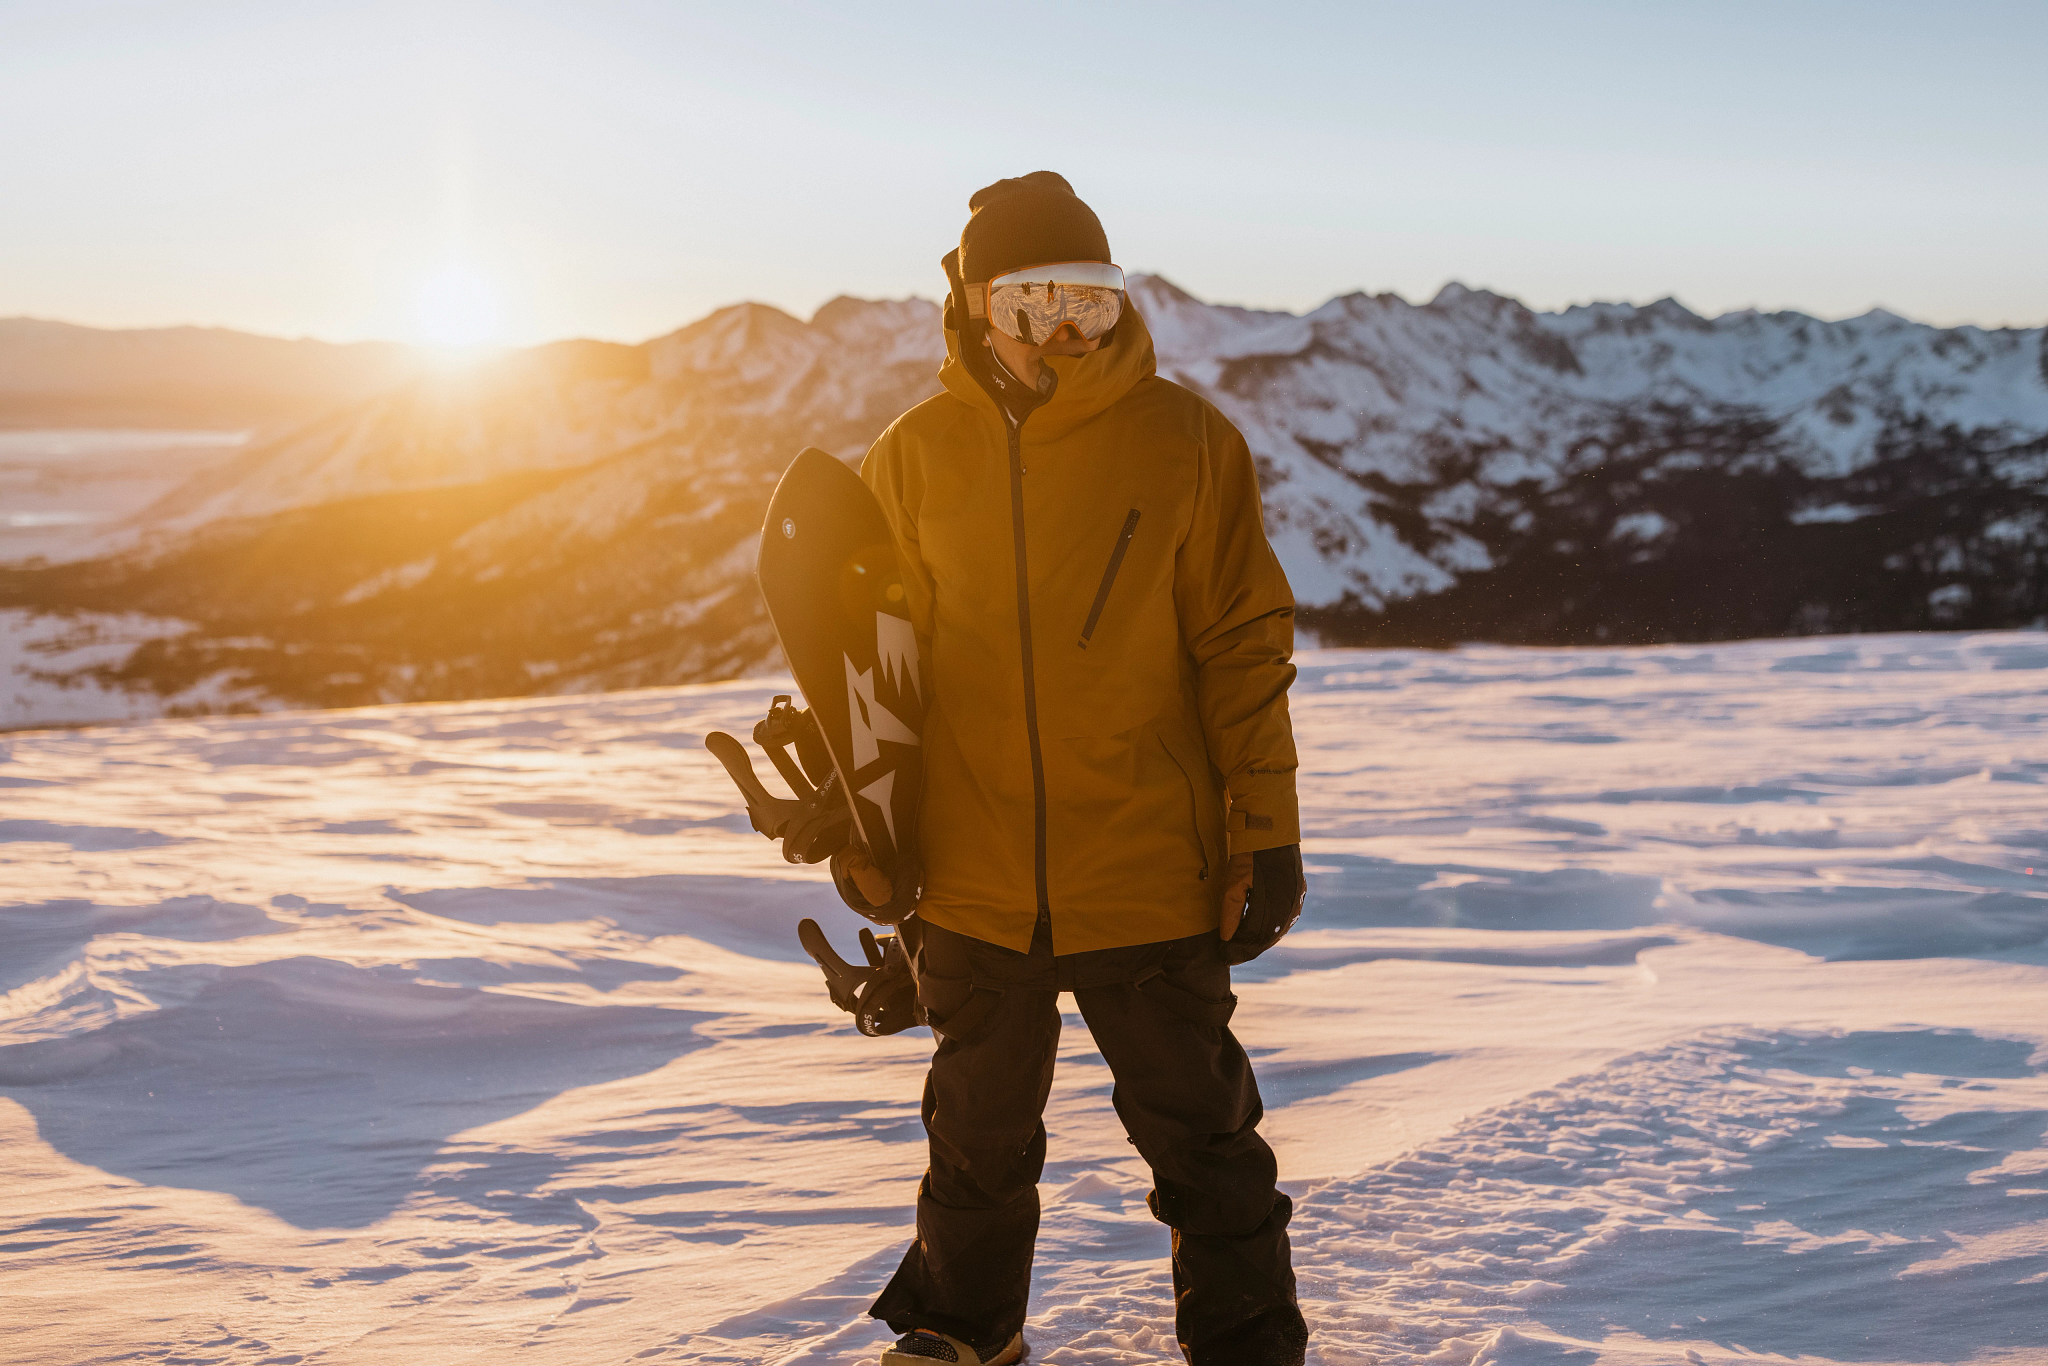 Snowboarder lonnie kauk standing on flat snow holding board